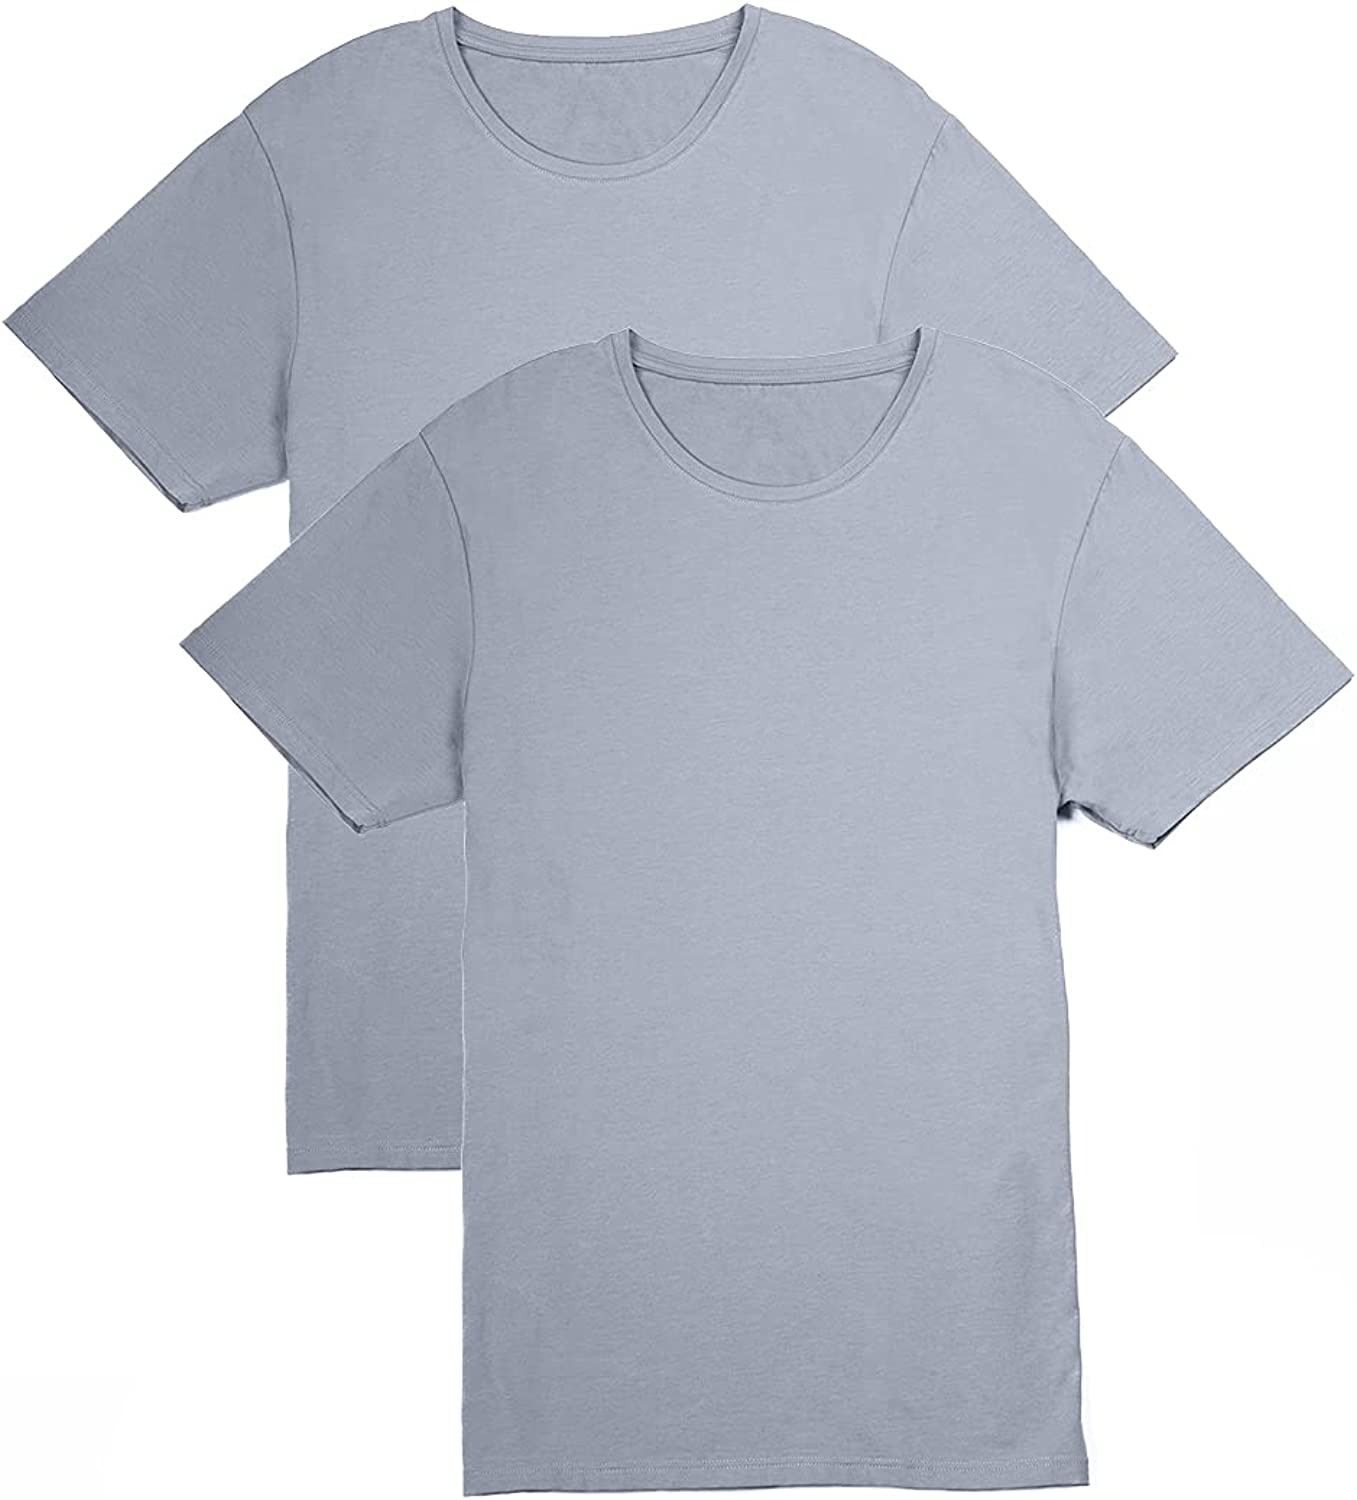 Fishers Finery Men's Over item handling ☆ Classic Crew Tucked Soft Comfort Neck Keep